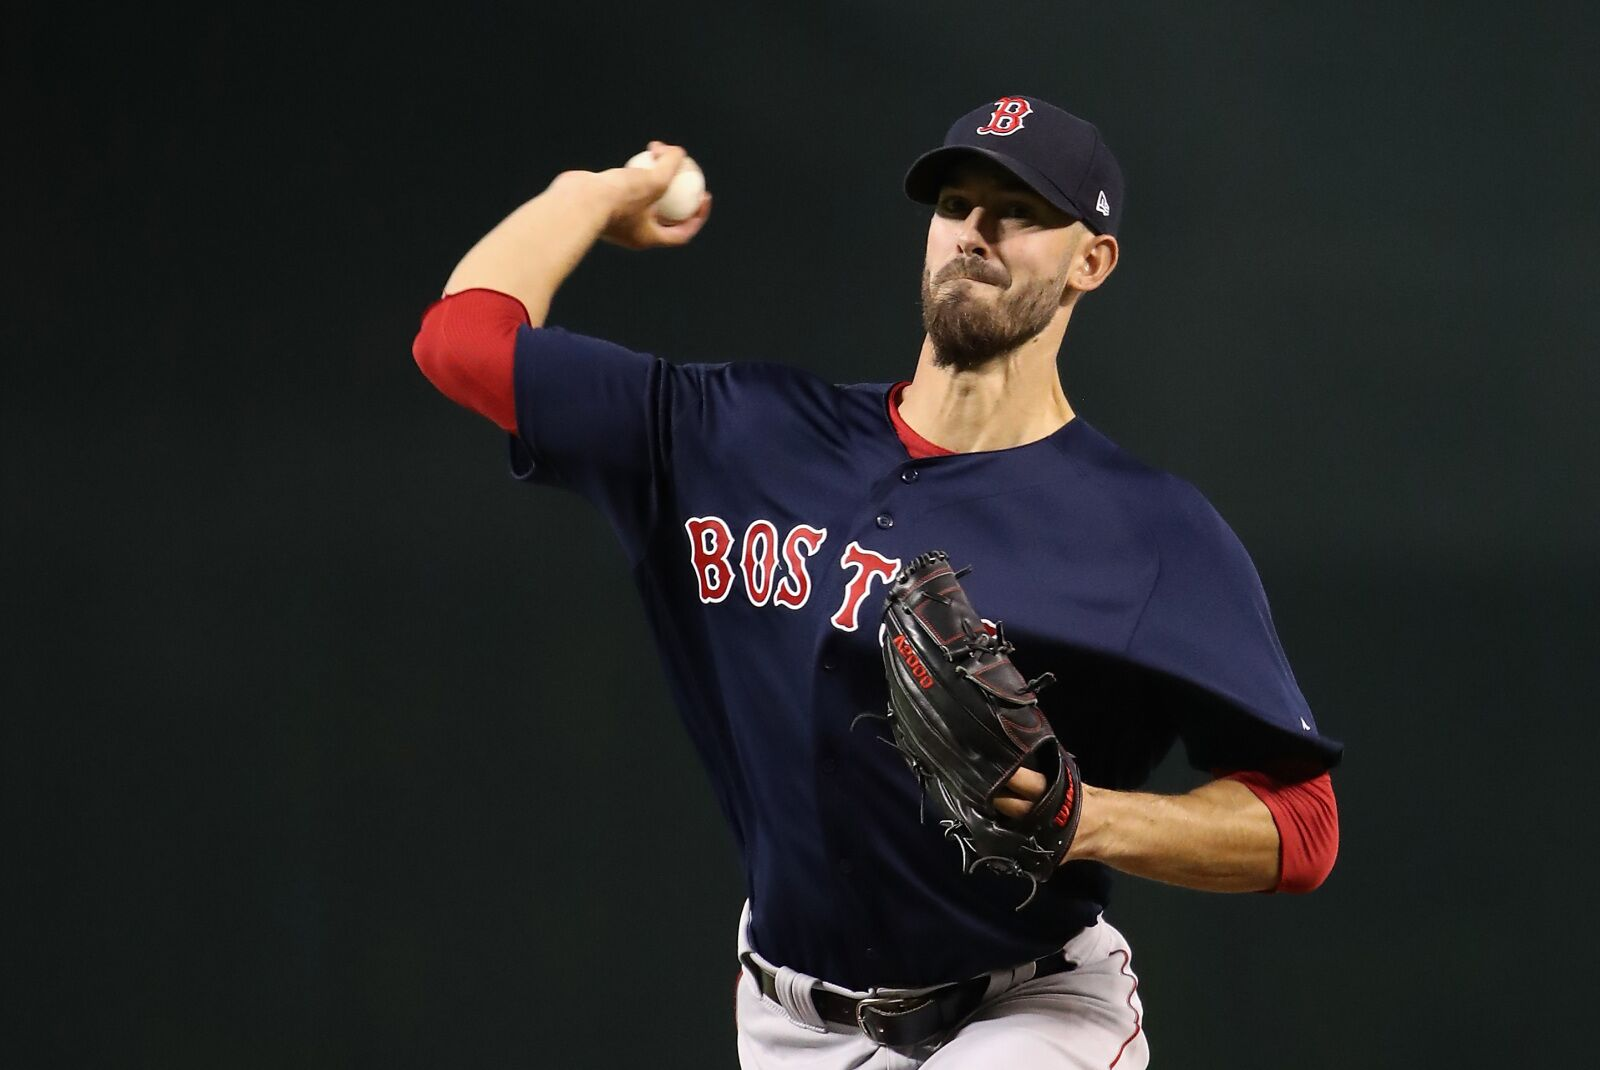 Red Sox starter Rick Porcello finishing his miserable season on positive note